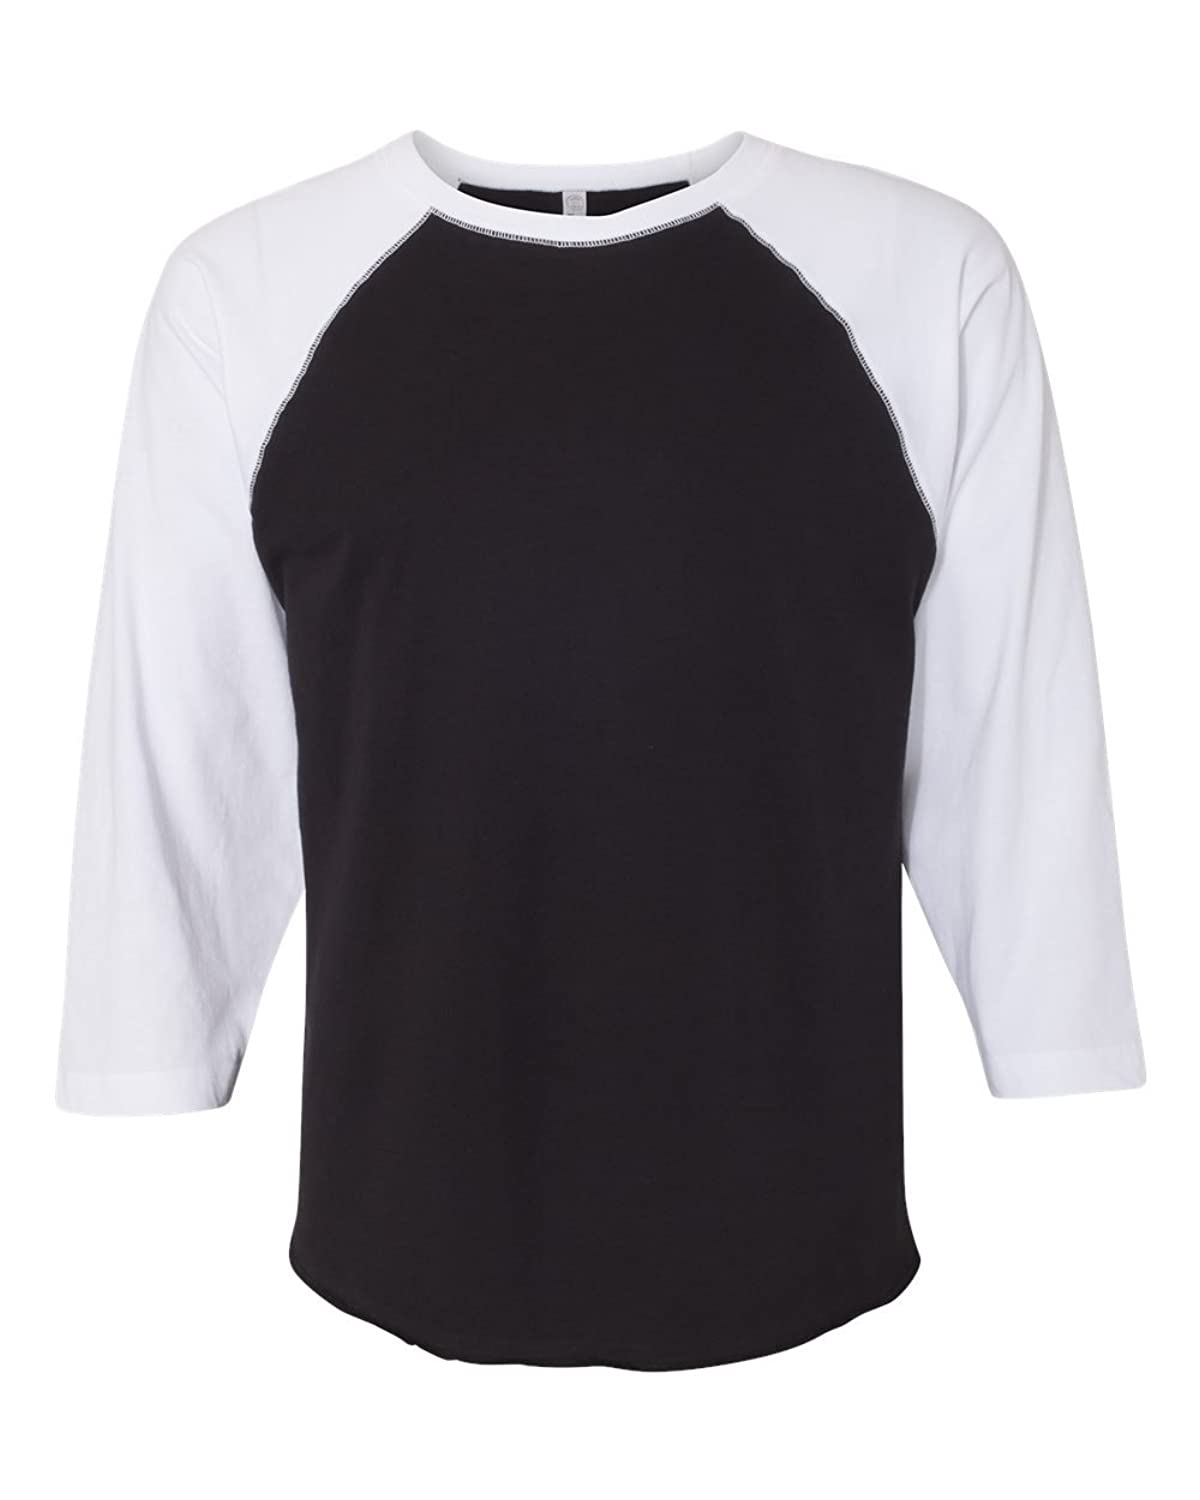 Pro tag 100 cotton 3 4 sleeve raglan baseball shirt in white black - Amazon Com Lat Apparel Adult Cotton Polyester Baseball Jersey Tee 3 4 Sleeve T Shirt Clothing